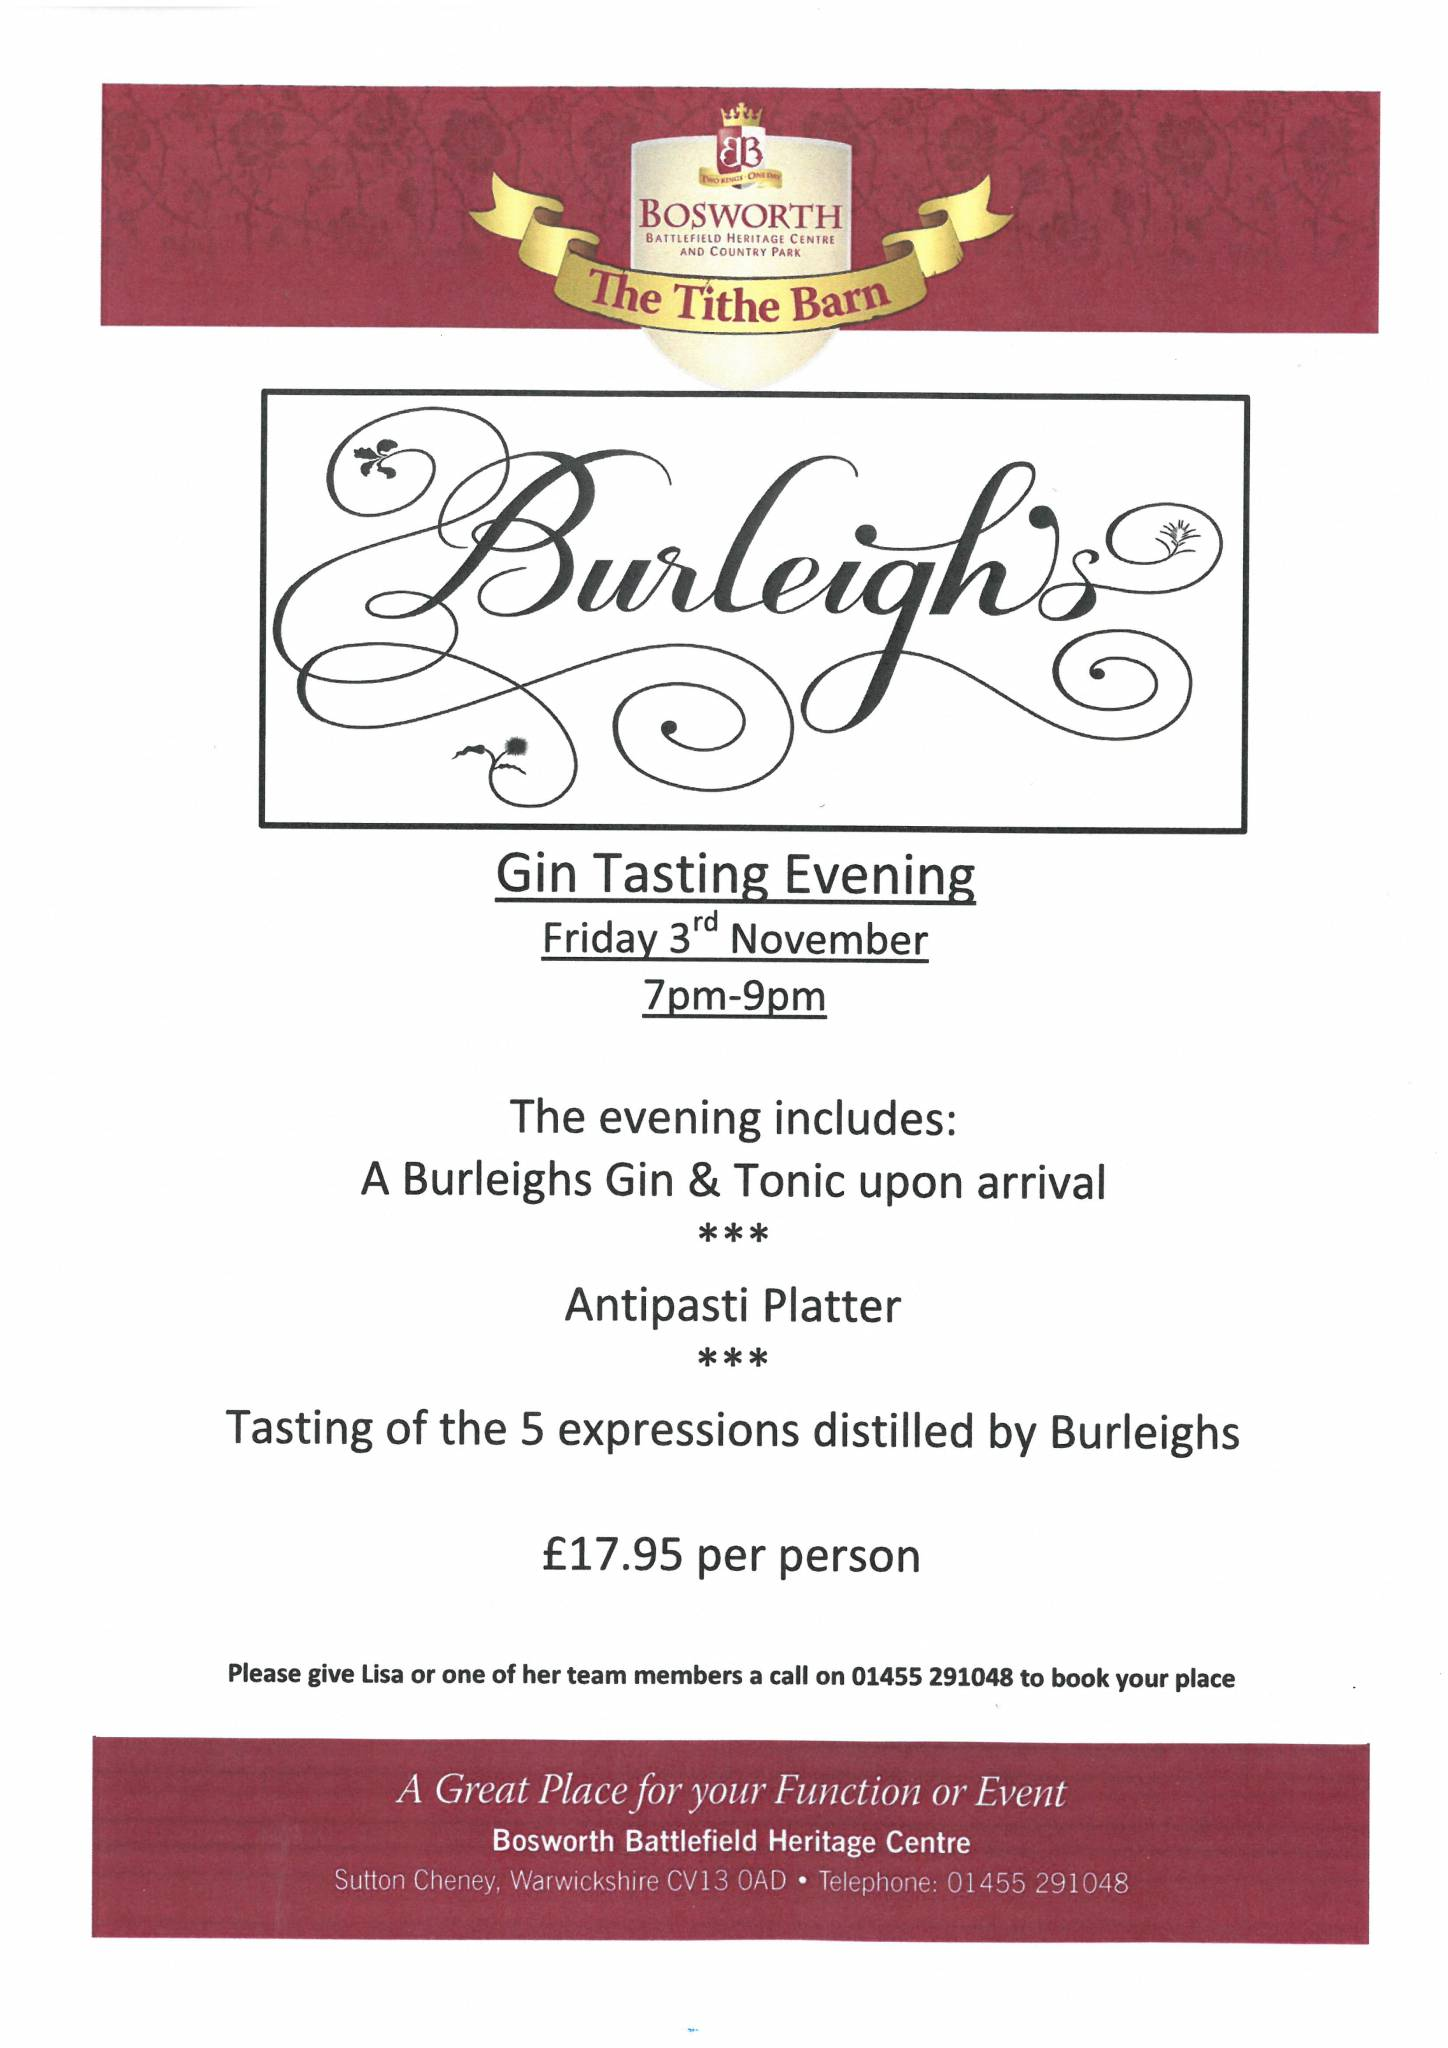 Burleighs Gin Tasting Evening in the Tithe Barn - CANCELLED